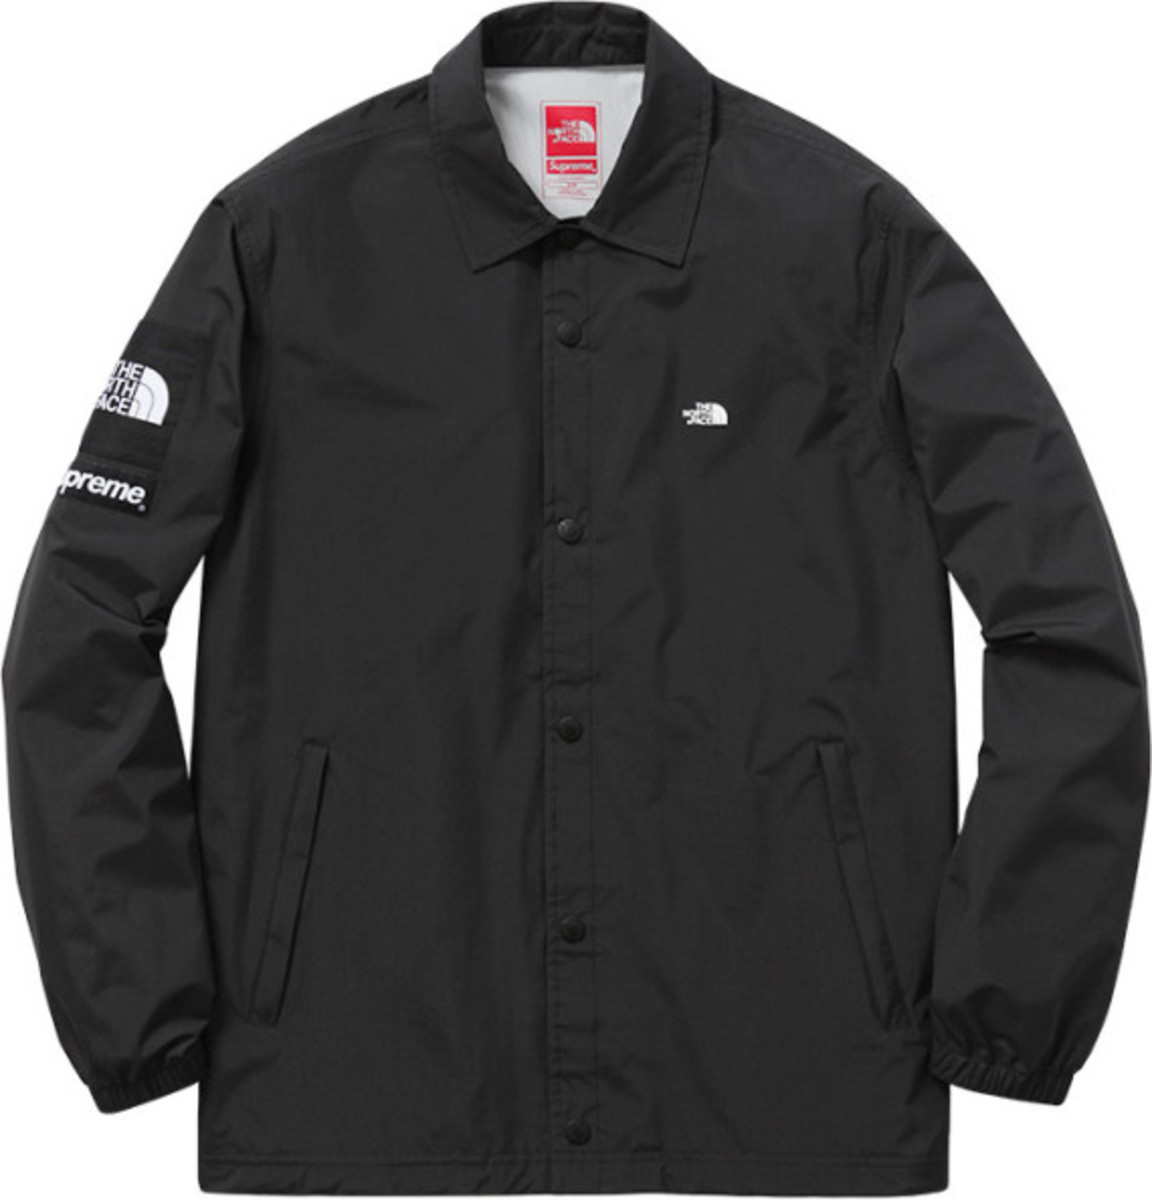 Supreme x The North Face - Spring/Summer 2015 Apparel and Gear Collection - 20